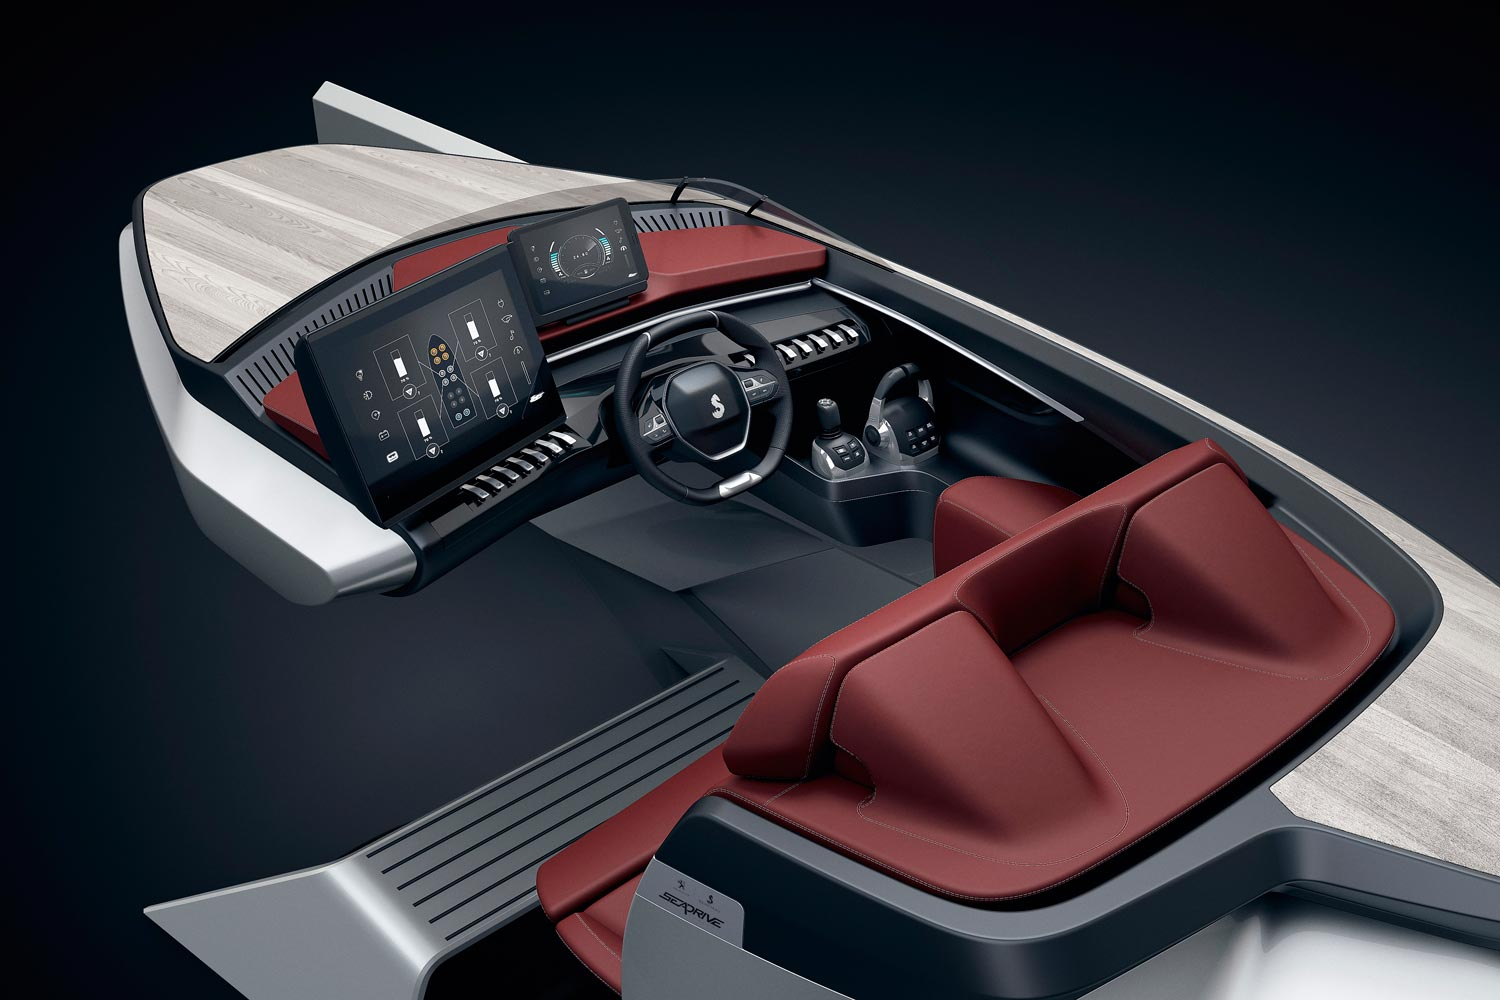 Sea Drive Concept Boat: A Combination of Peugeot and Beneteau Technology 8